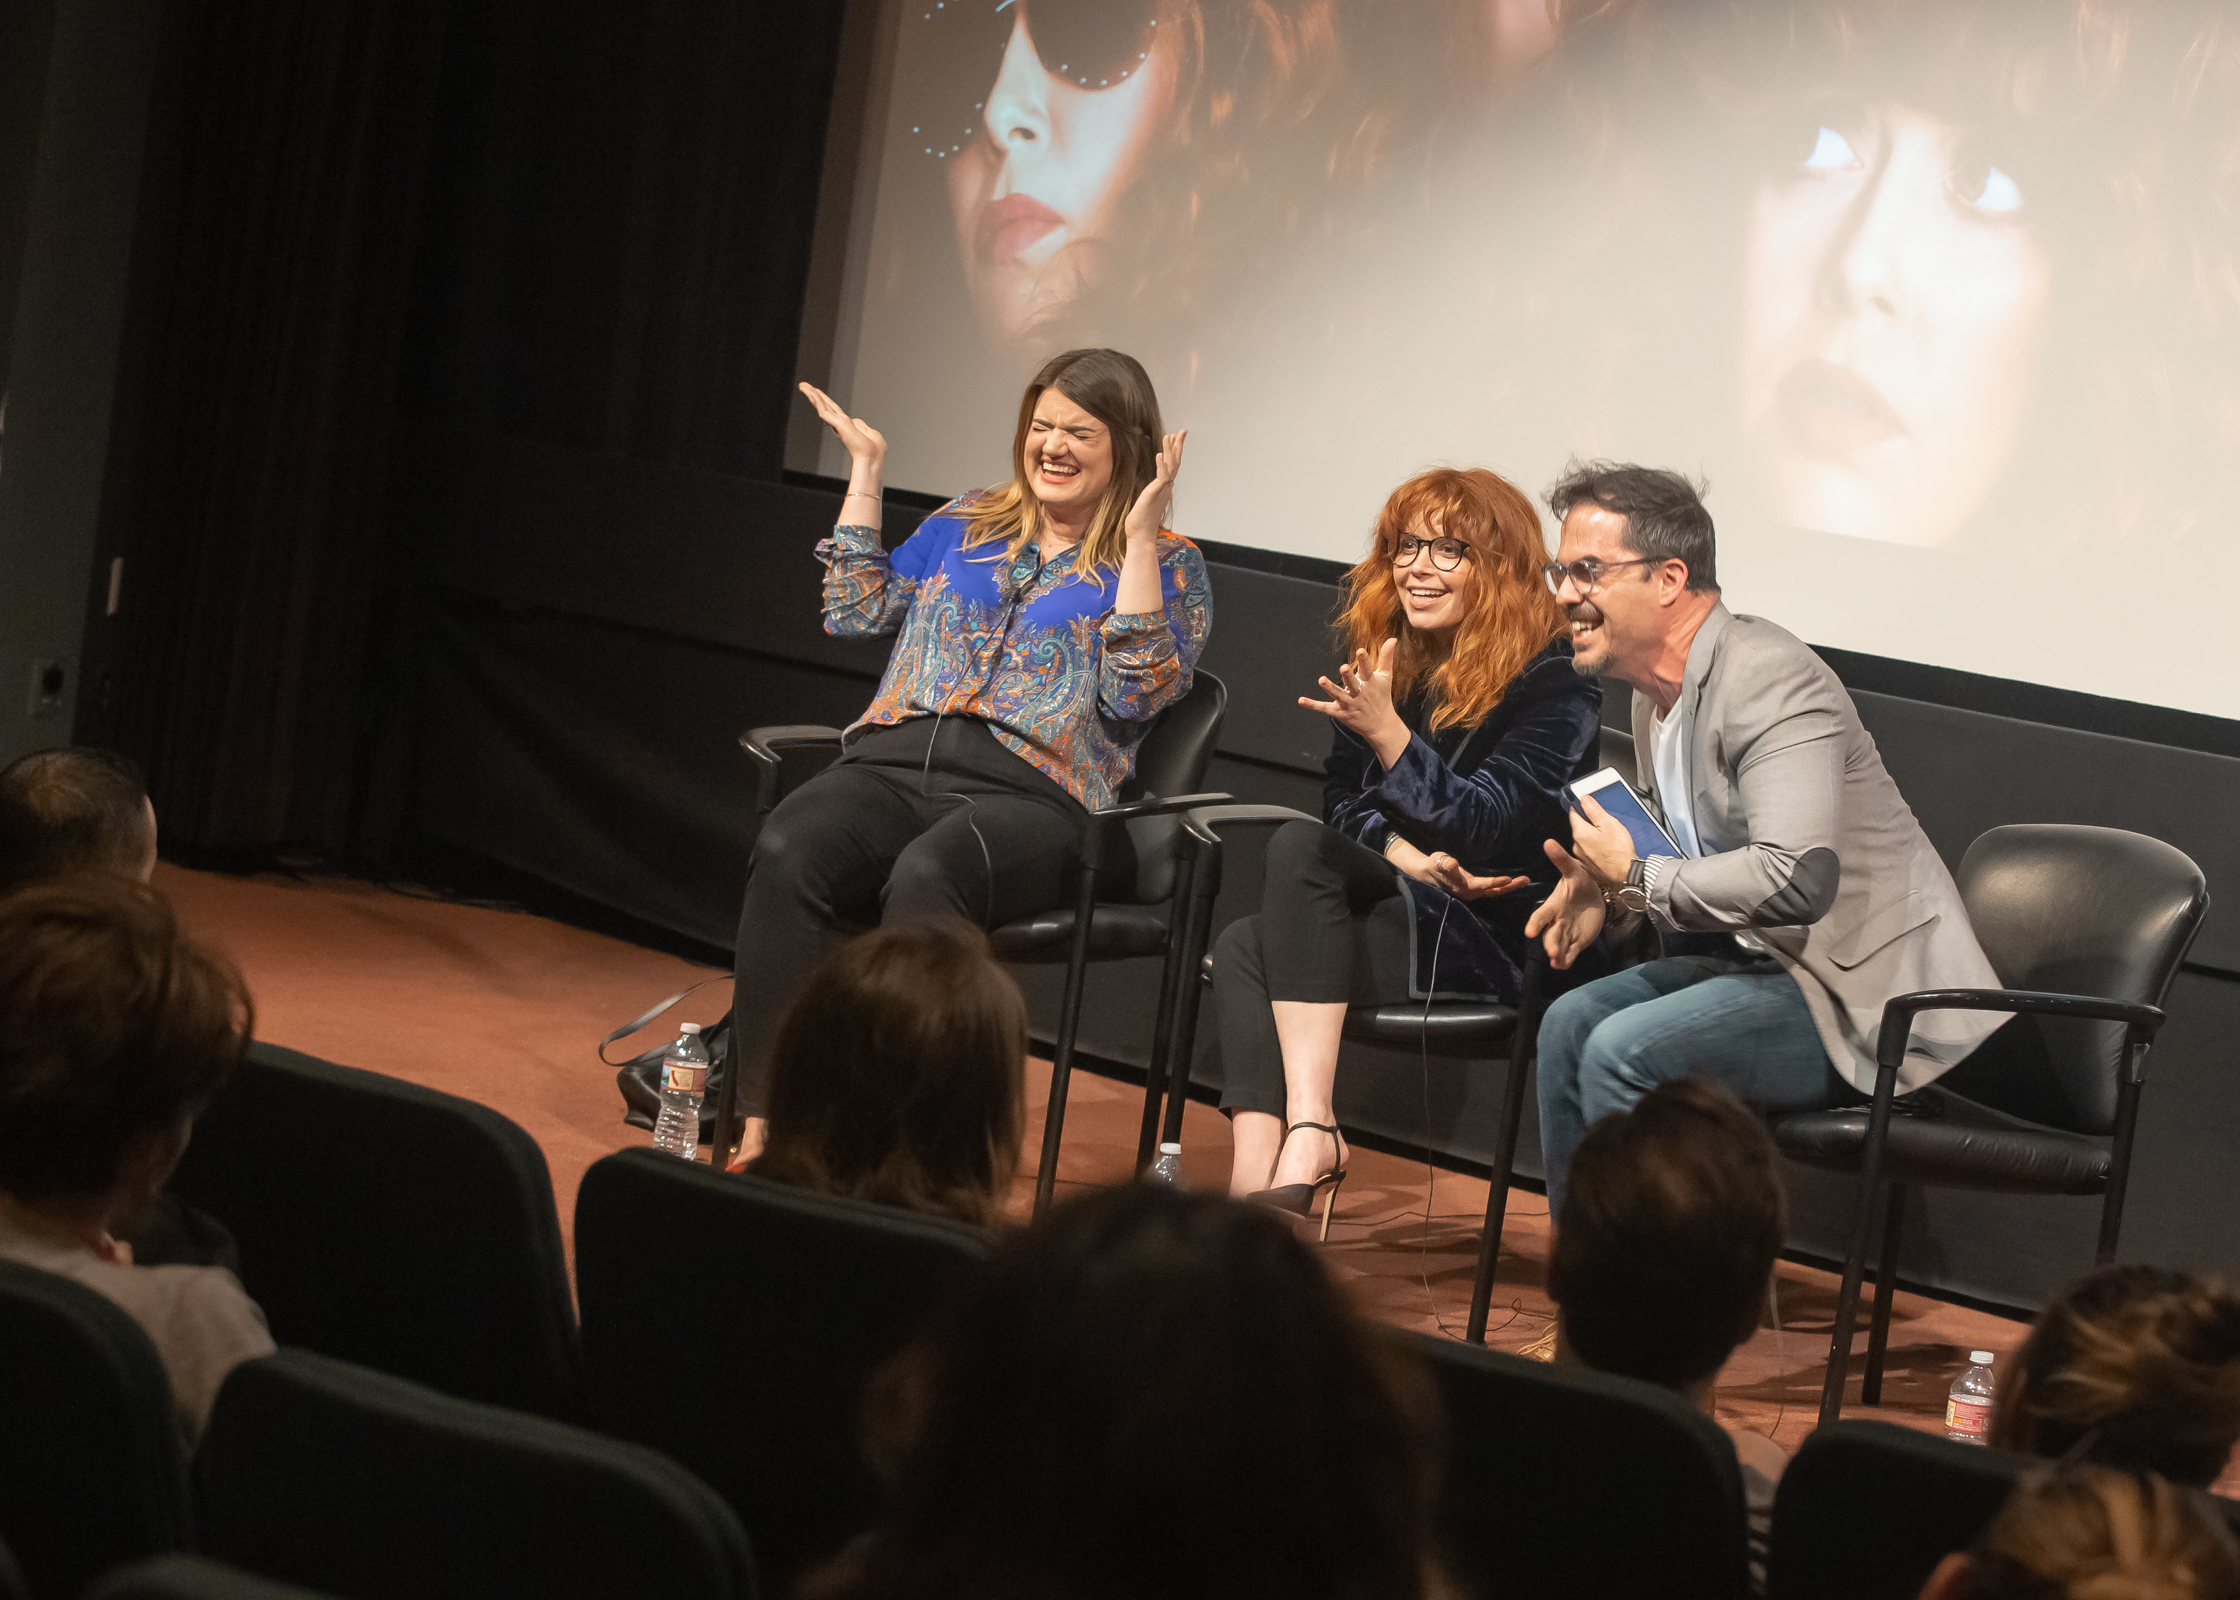 Natasha Lyonne, Leslye Headland, and Chris Schwartz having a blast at AFI. Image provided by  Chris Schwartz .